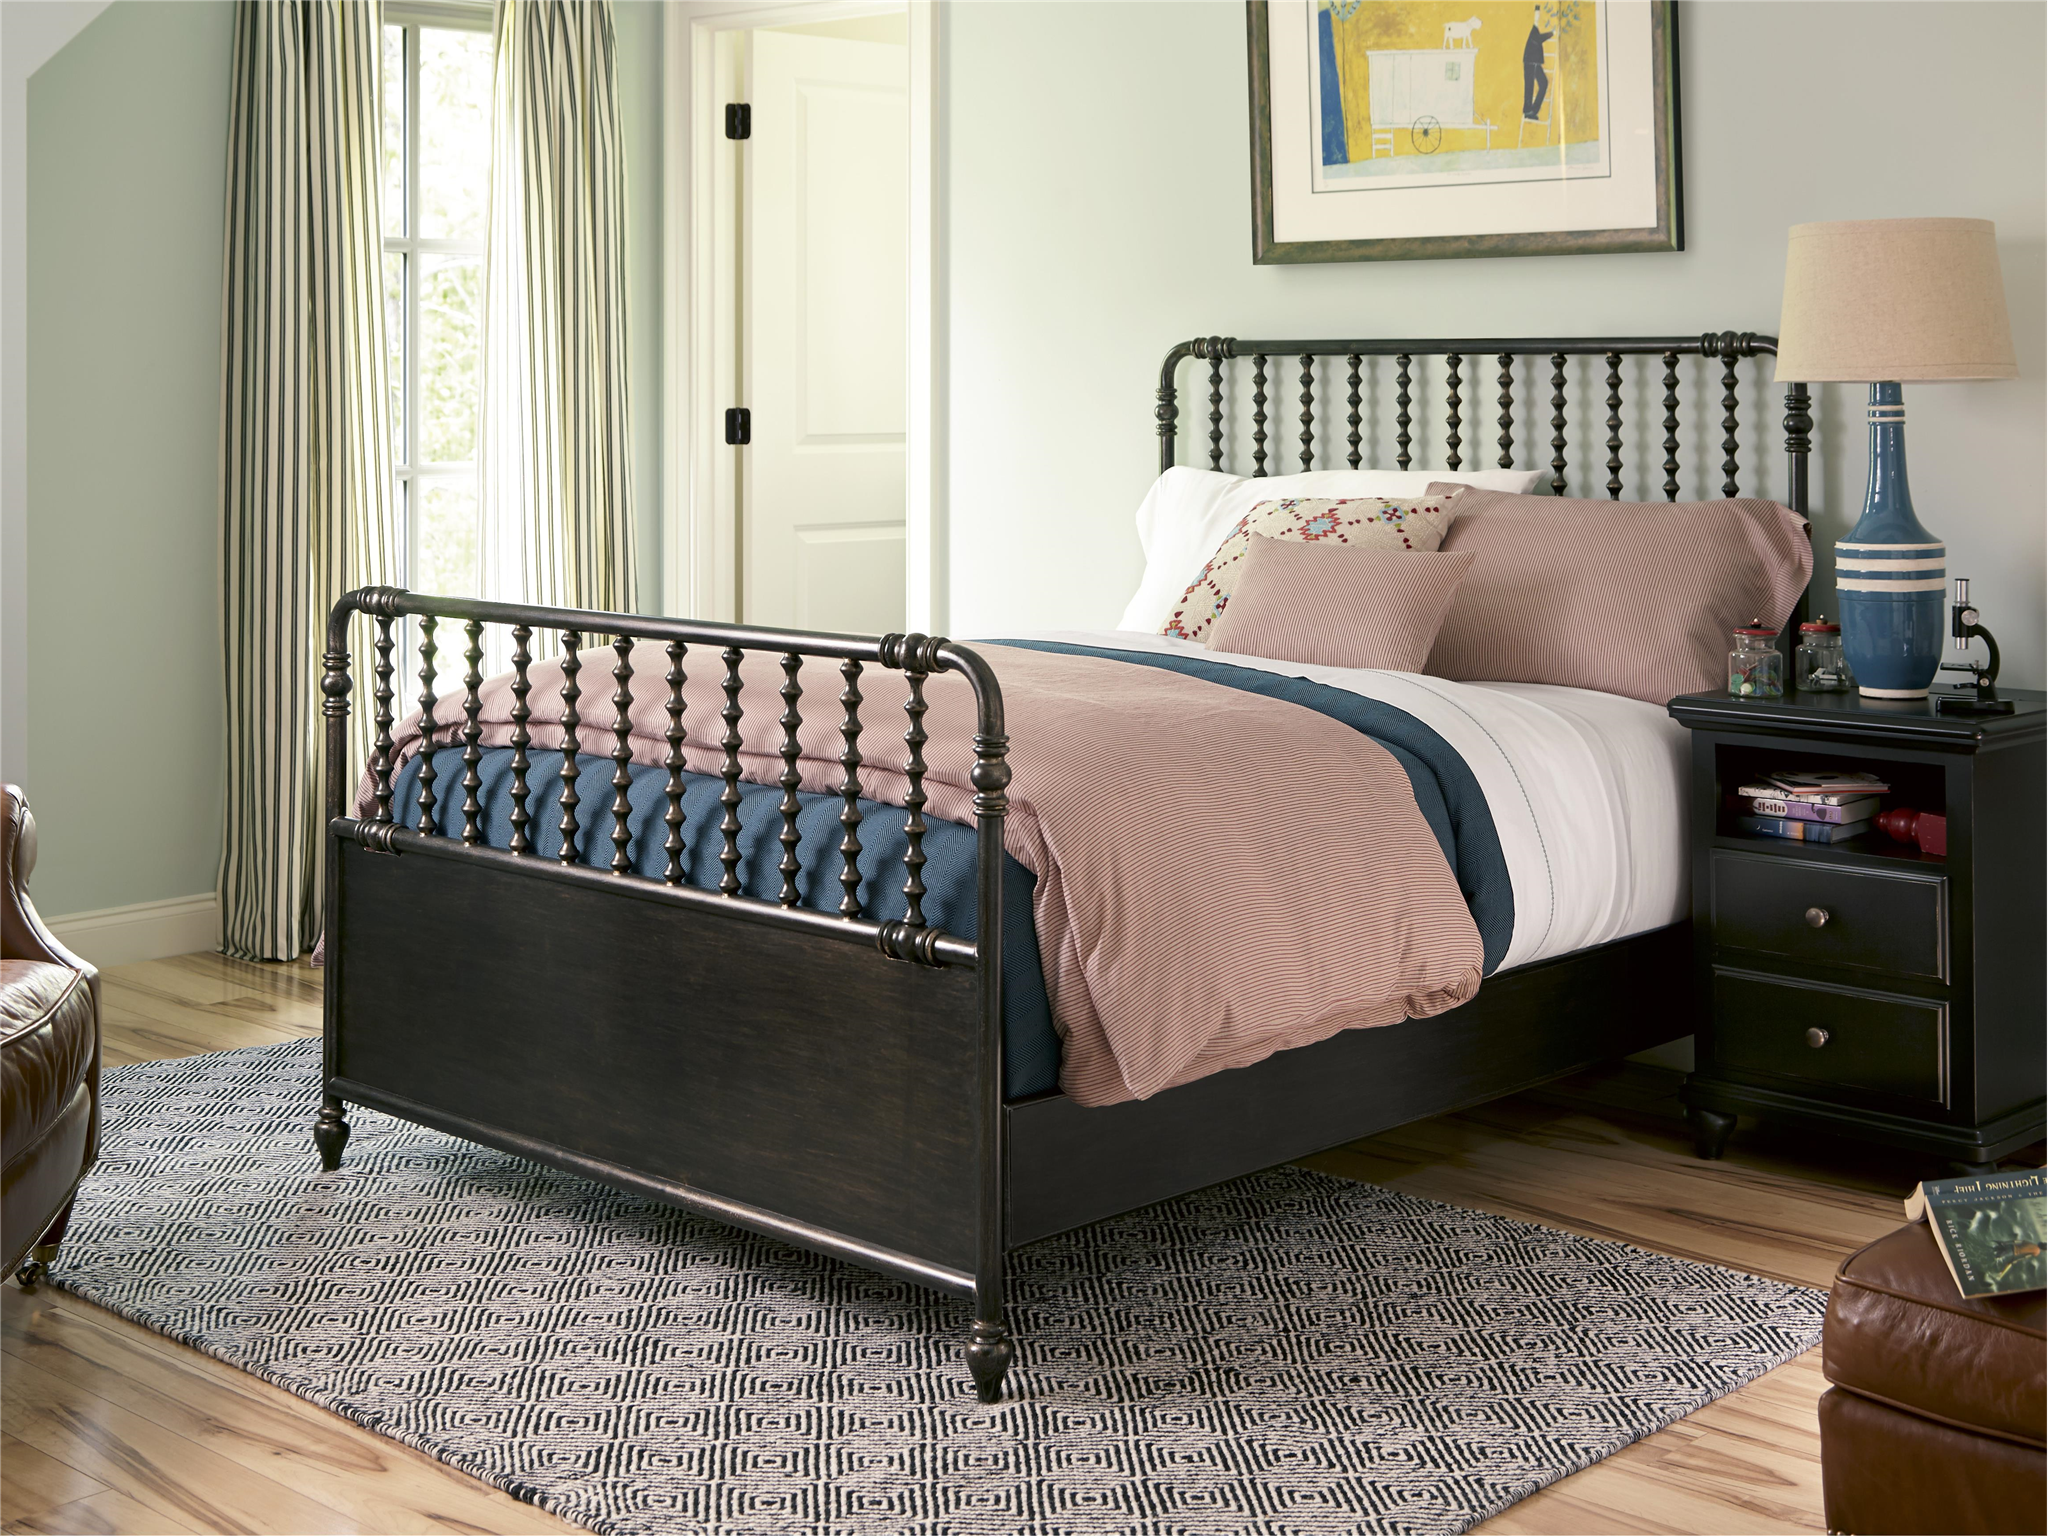 American Classic Metal Bed (Full)